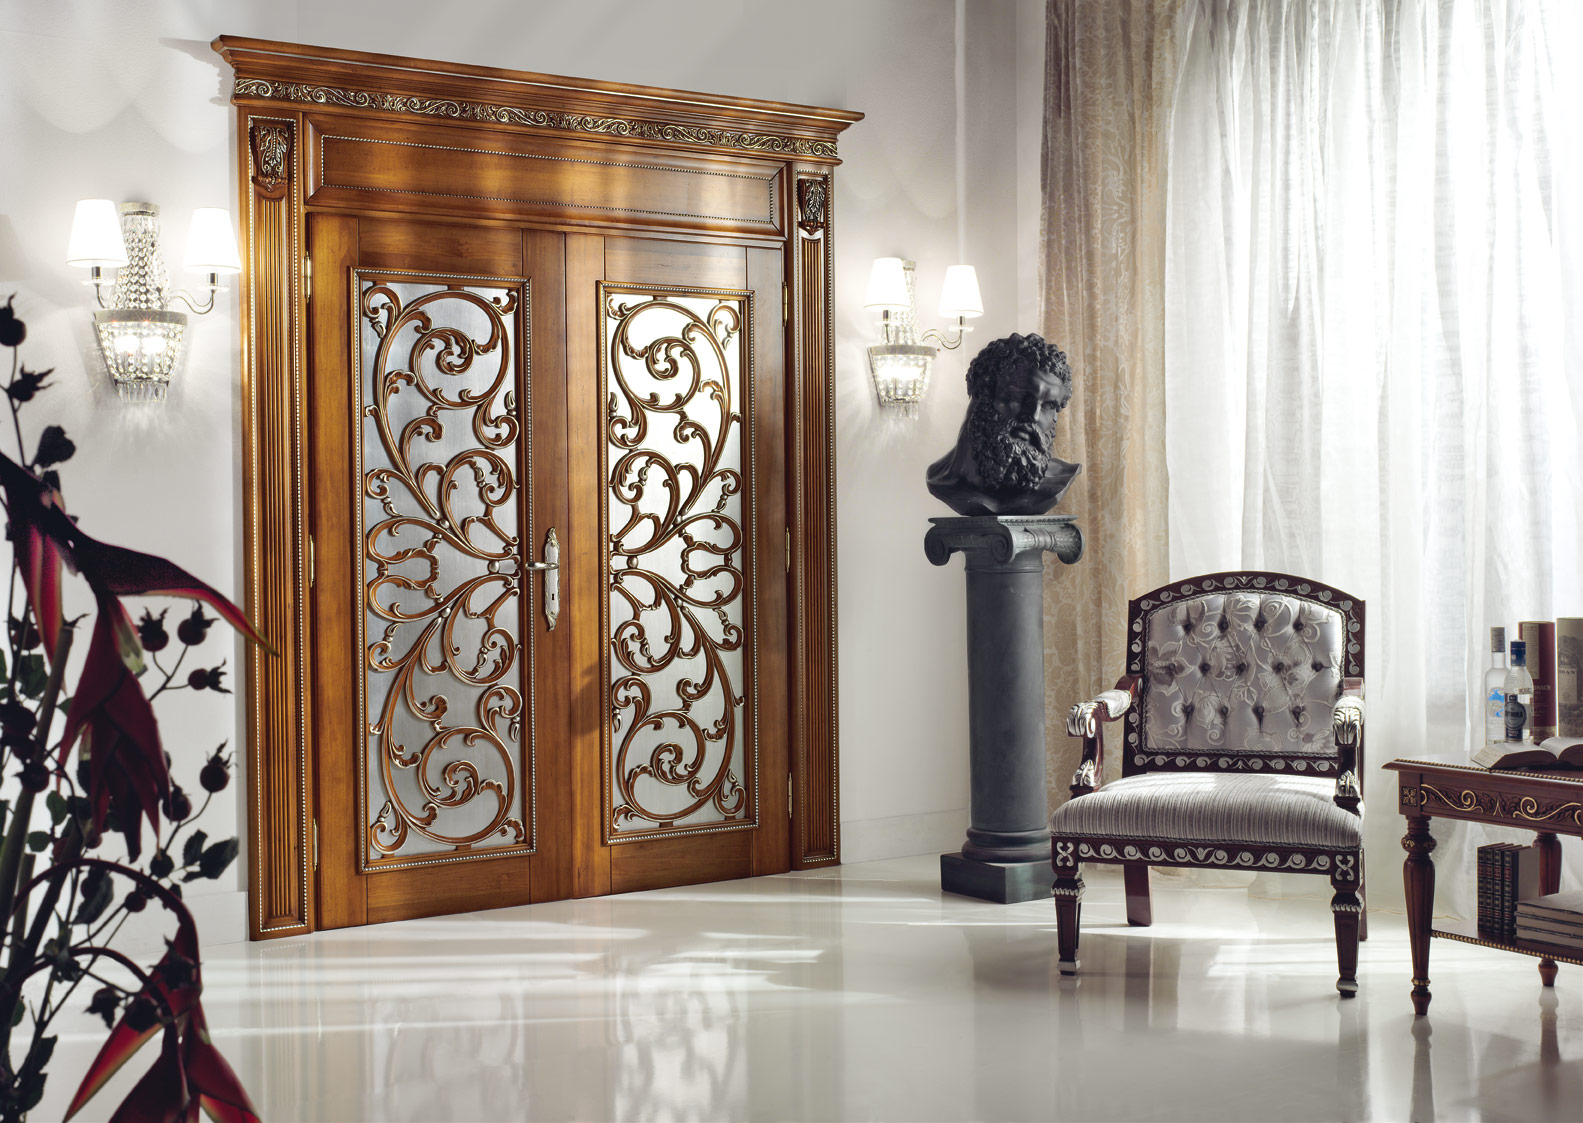 A photo of custom double security doors at the entrance of a master bedroom in a luxury home.